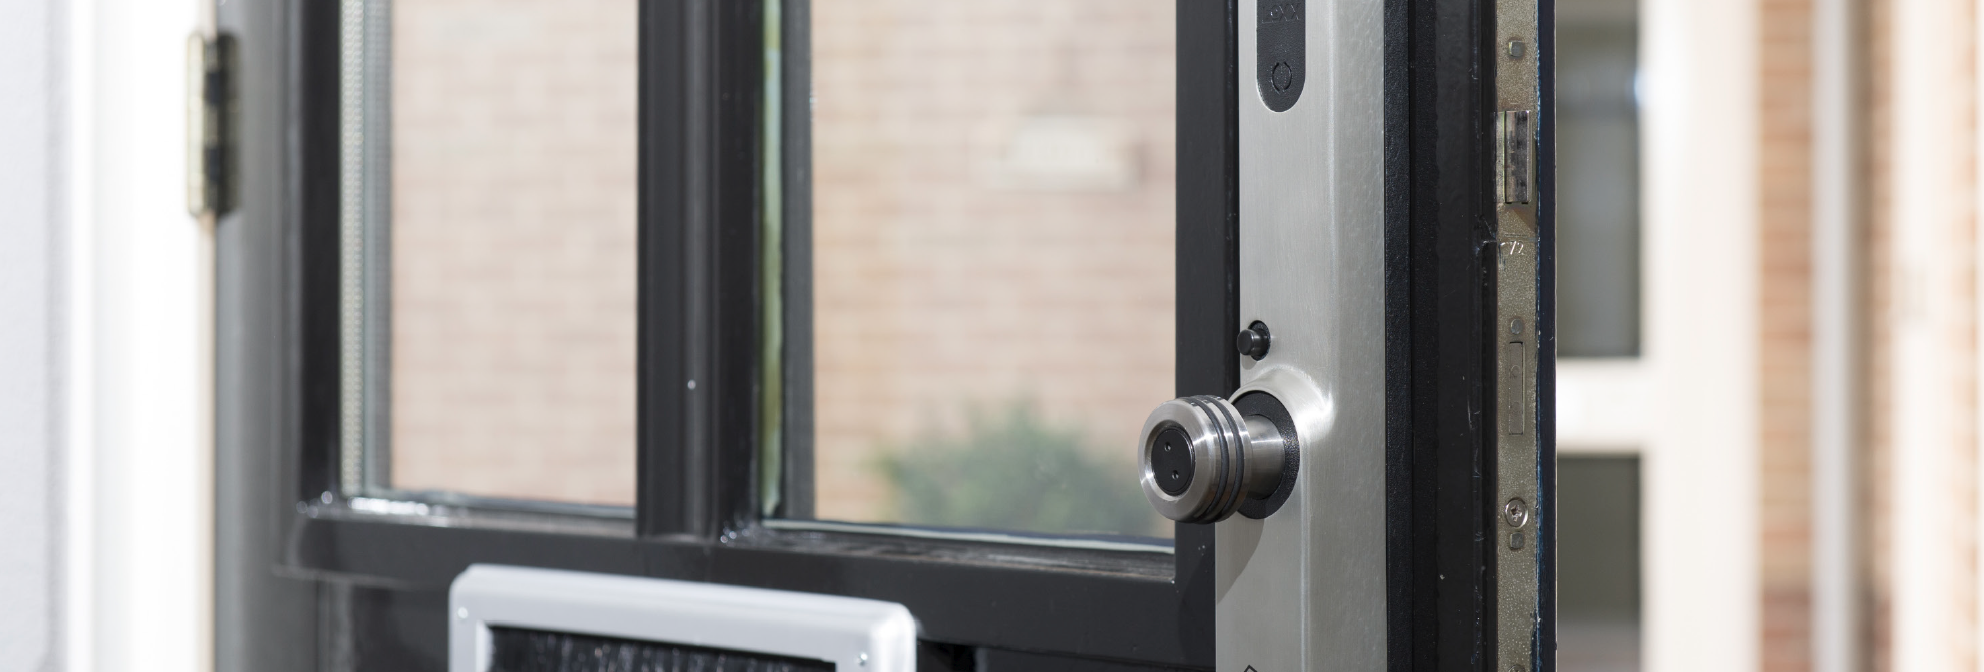 Voordeur met Invited smart lock